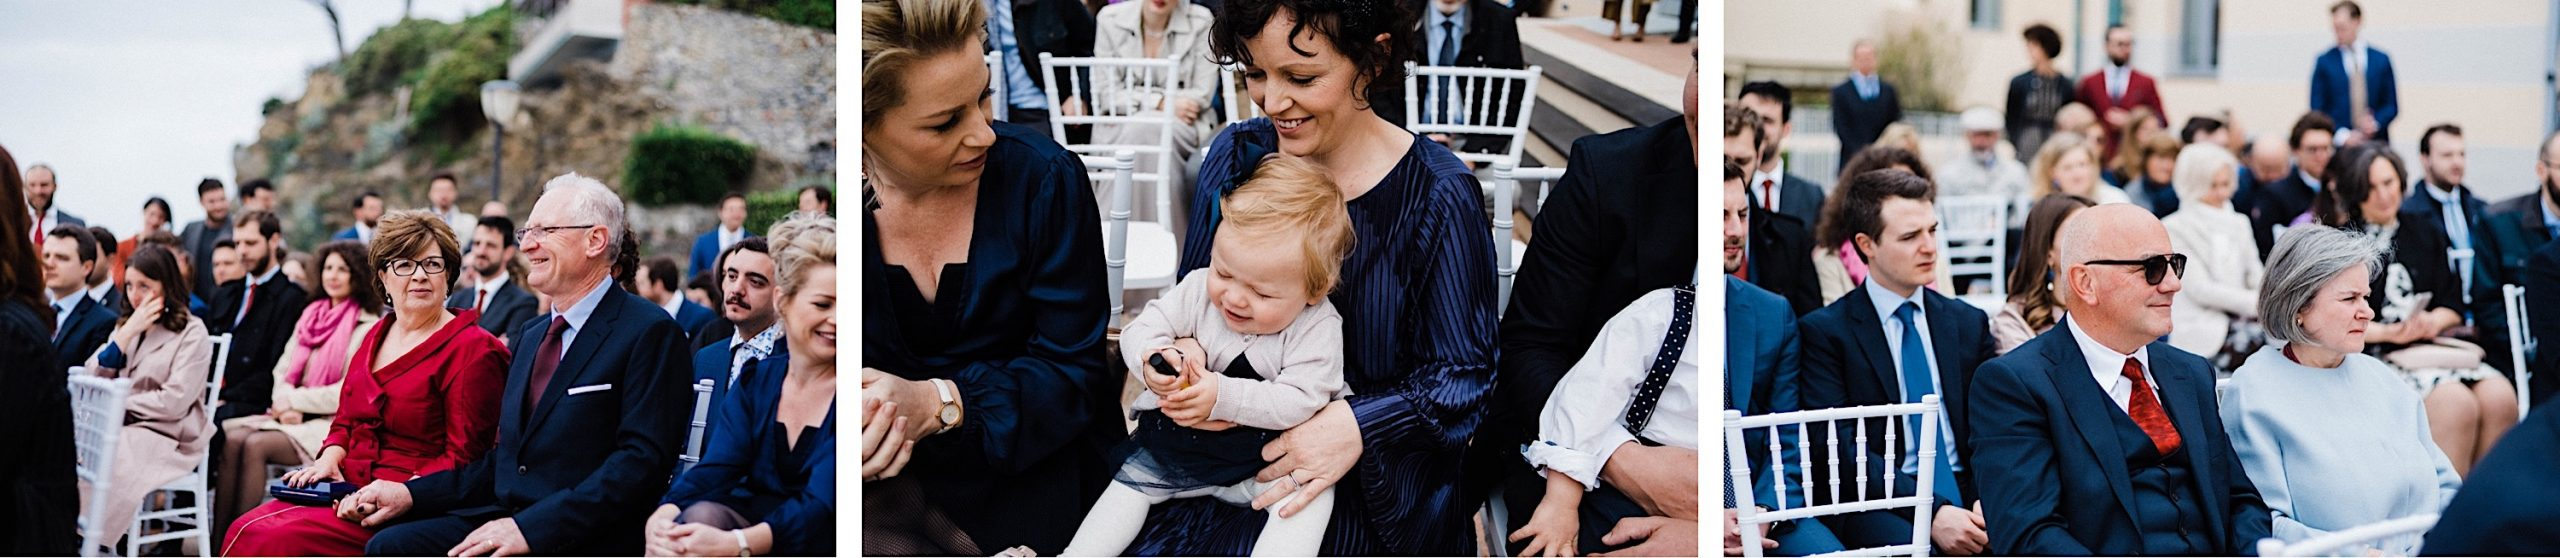 Three Candid Destination Wedding Photos of guests at a Wedding Ceremony in Sestri Levante, featuring the parents of the Bride & Groom and their ring bearer.